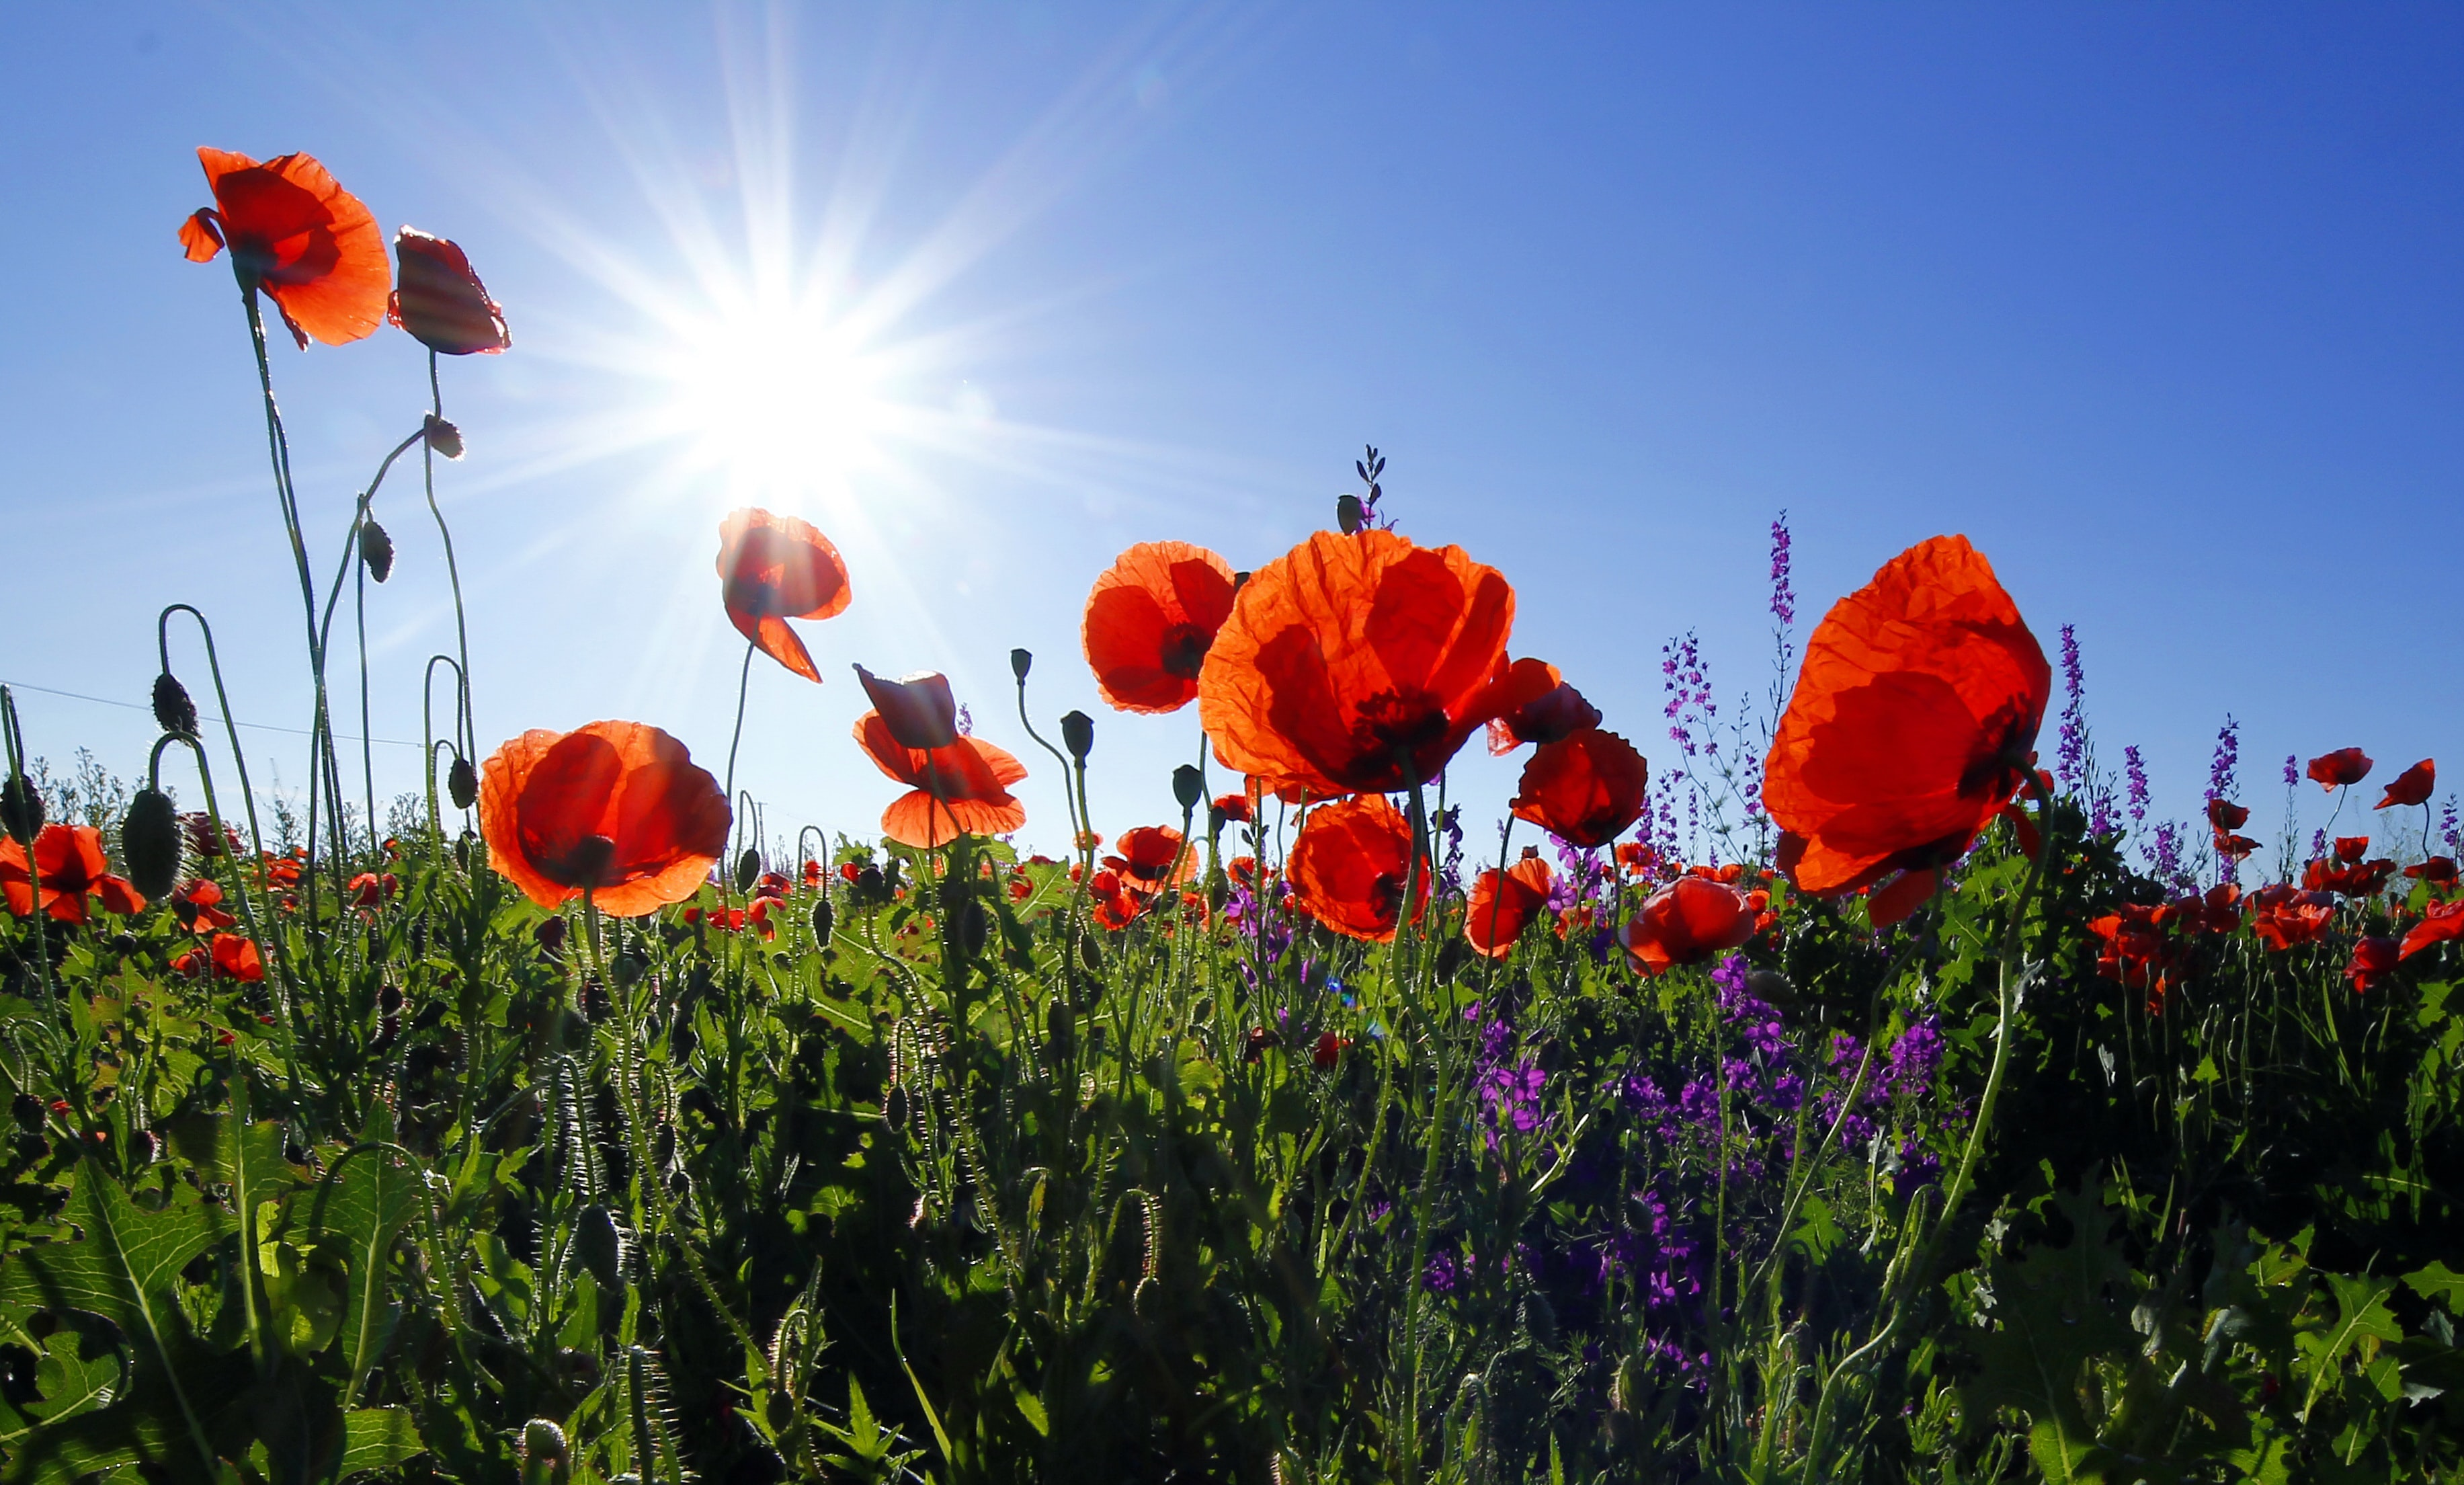 red poppy flower field at daytime